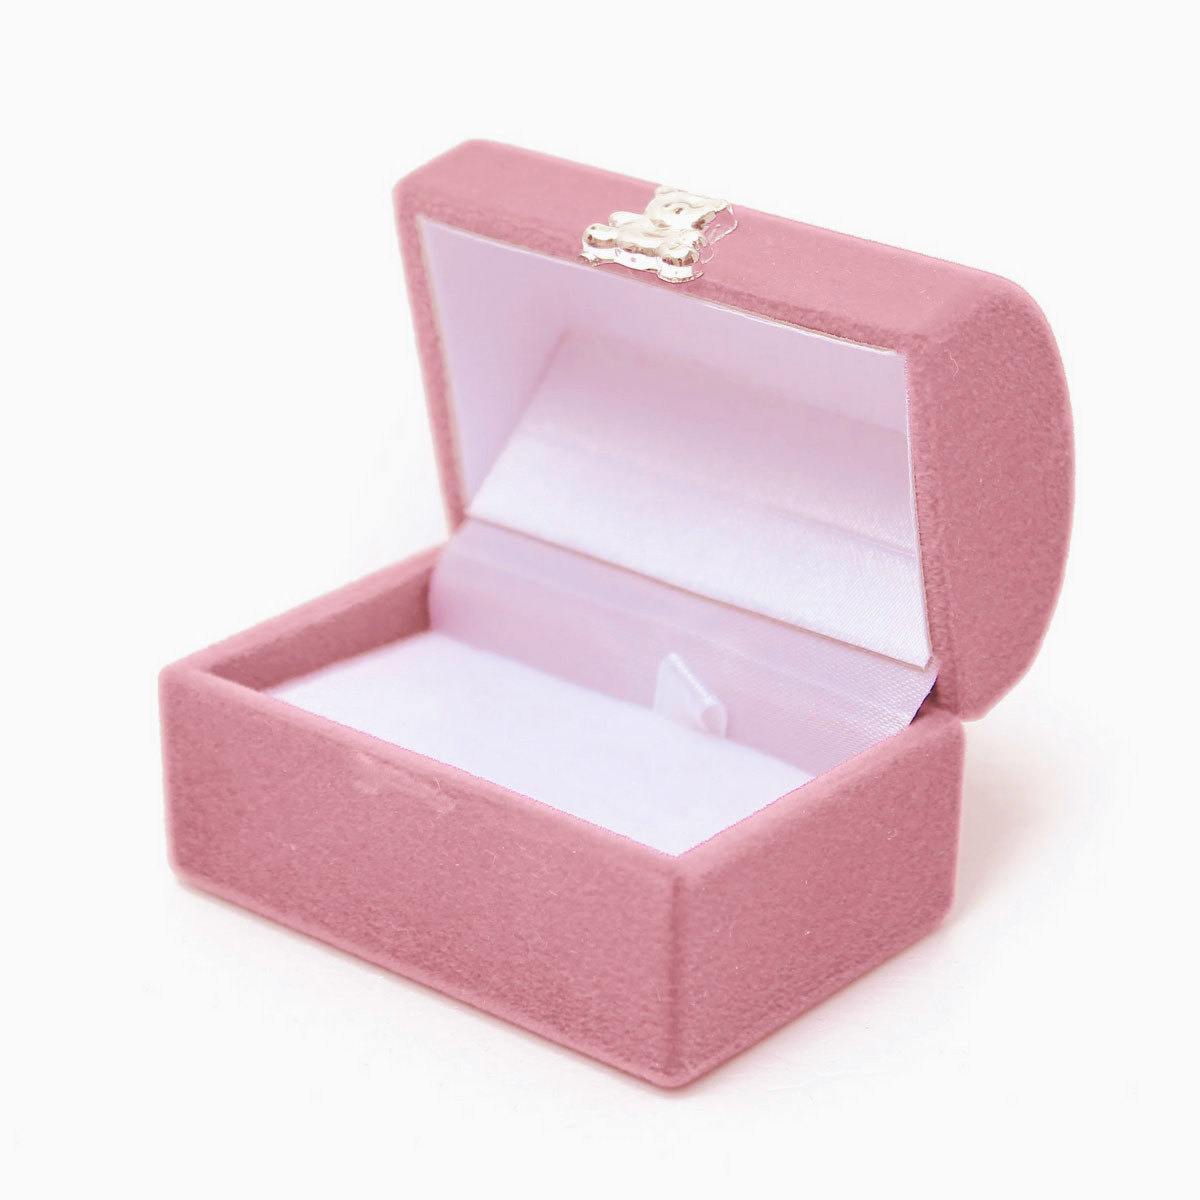 Velvet Square Jewelry Storage Case